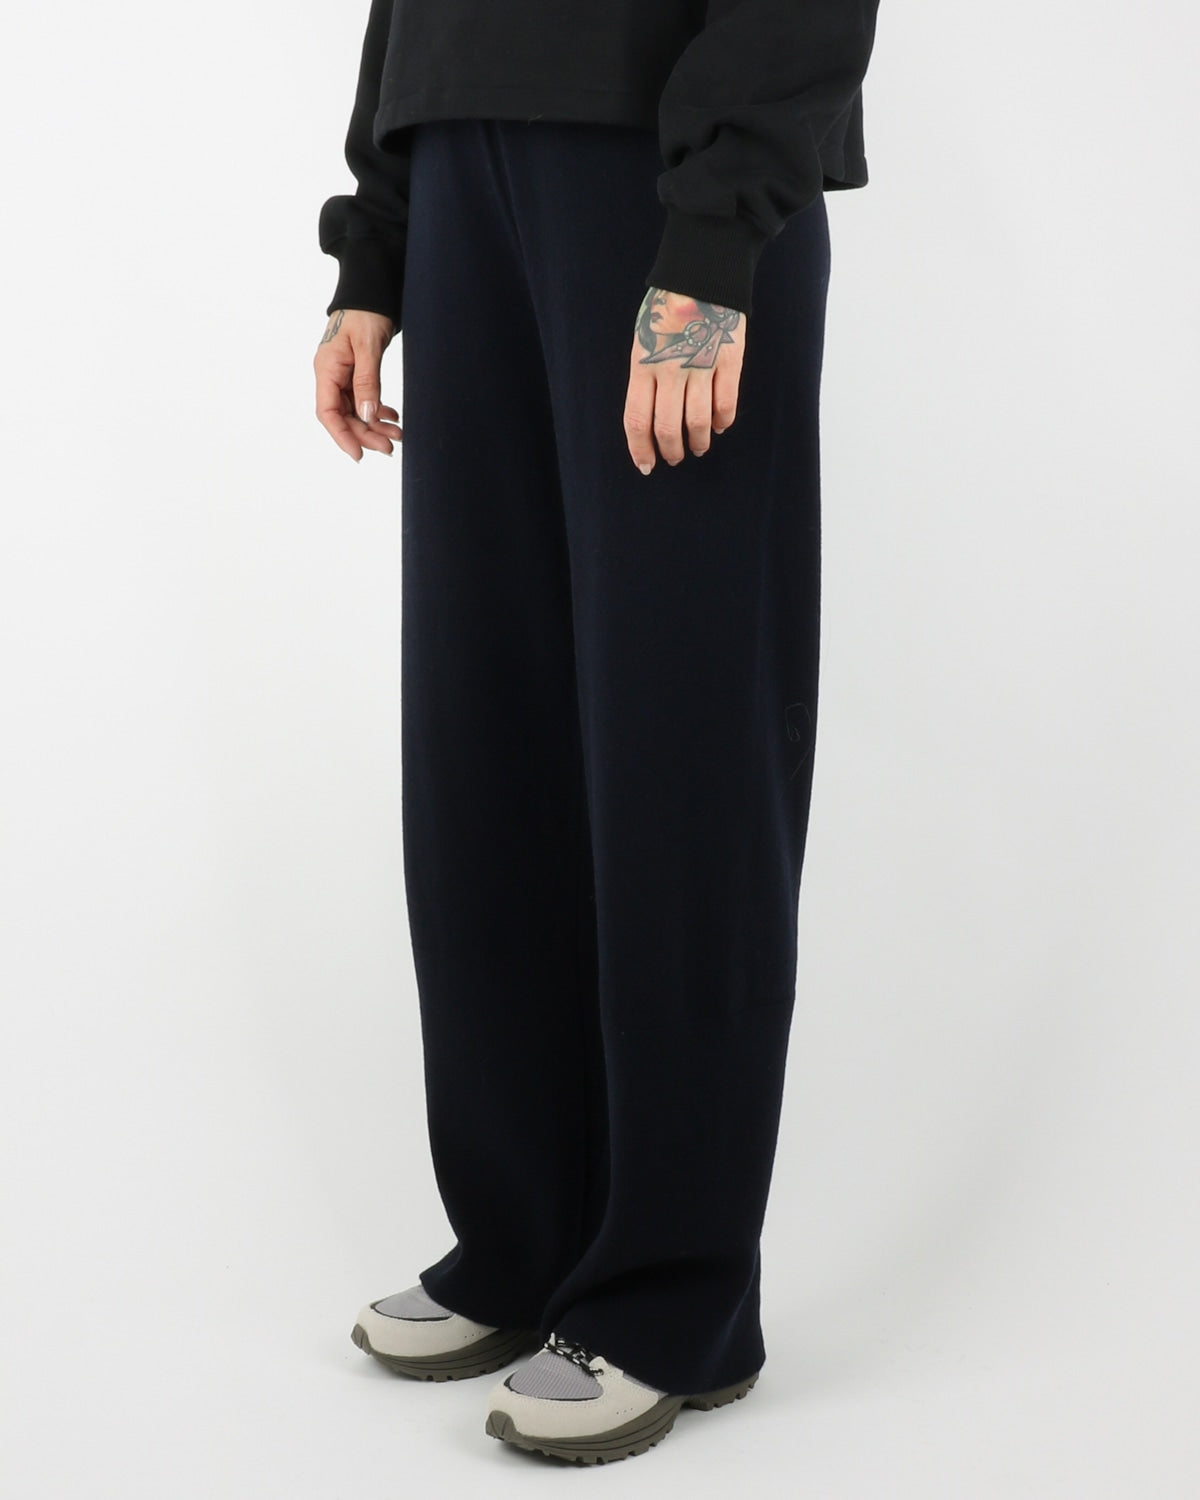 libertine libertine_relax pants_black_2_2